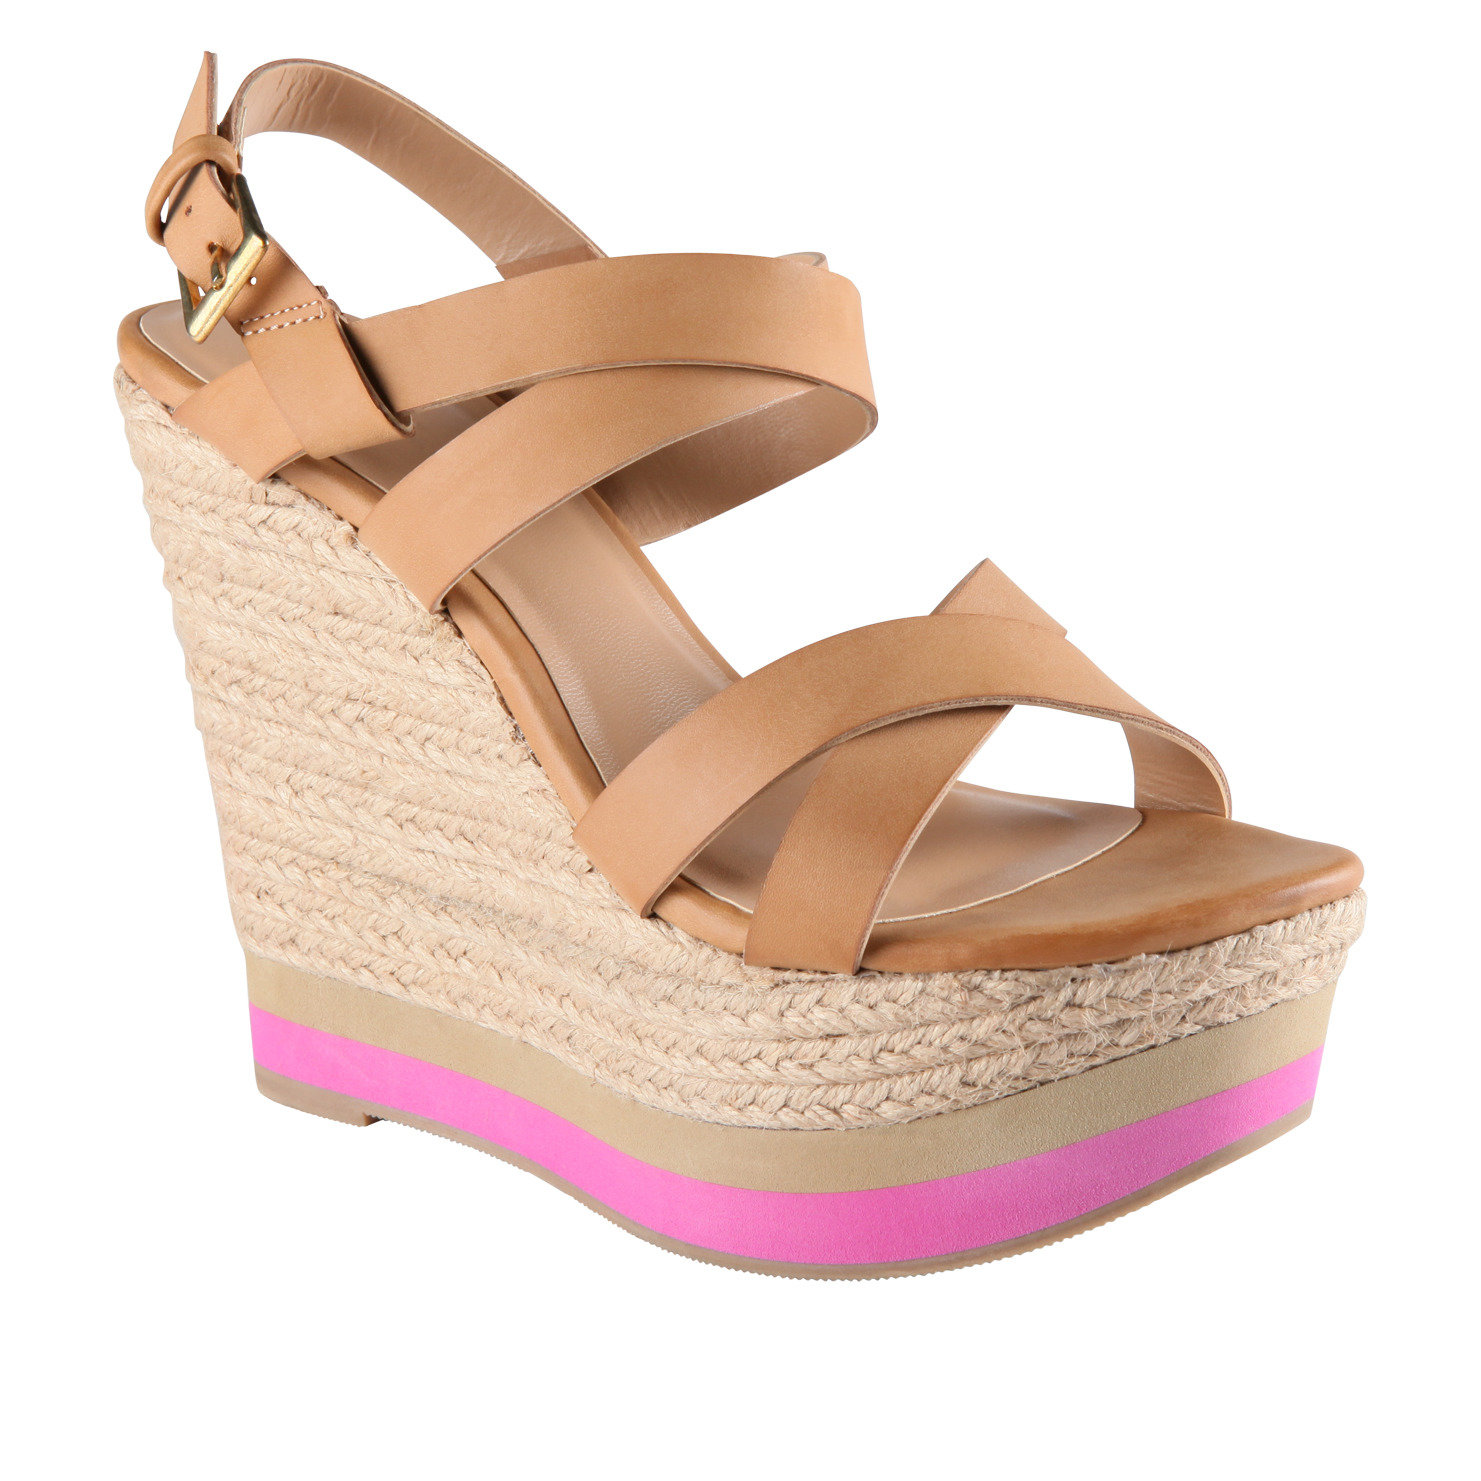 andya s wedges sandals for sale from aldo shoes